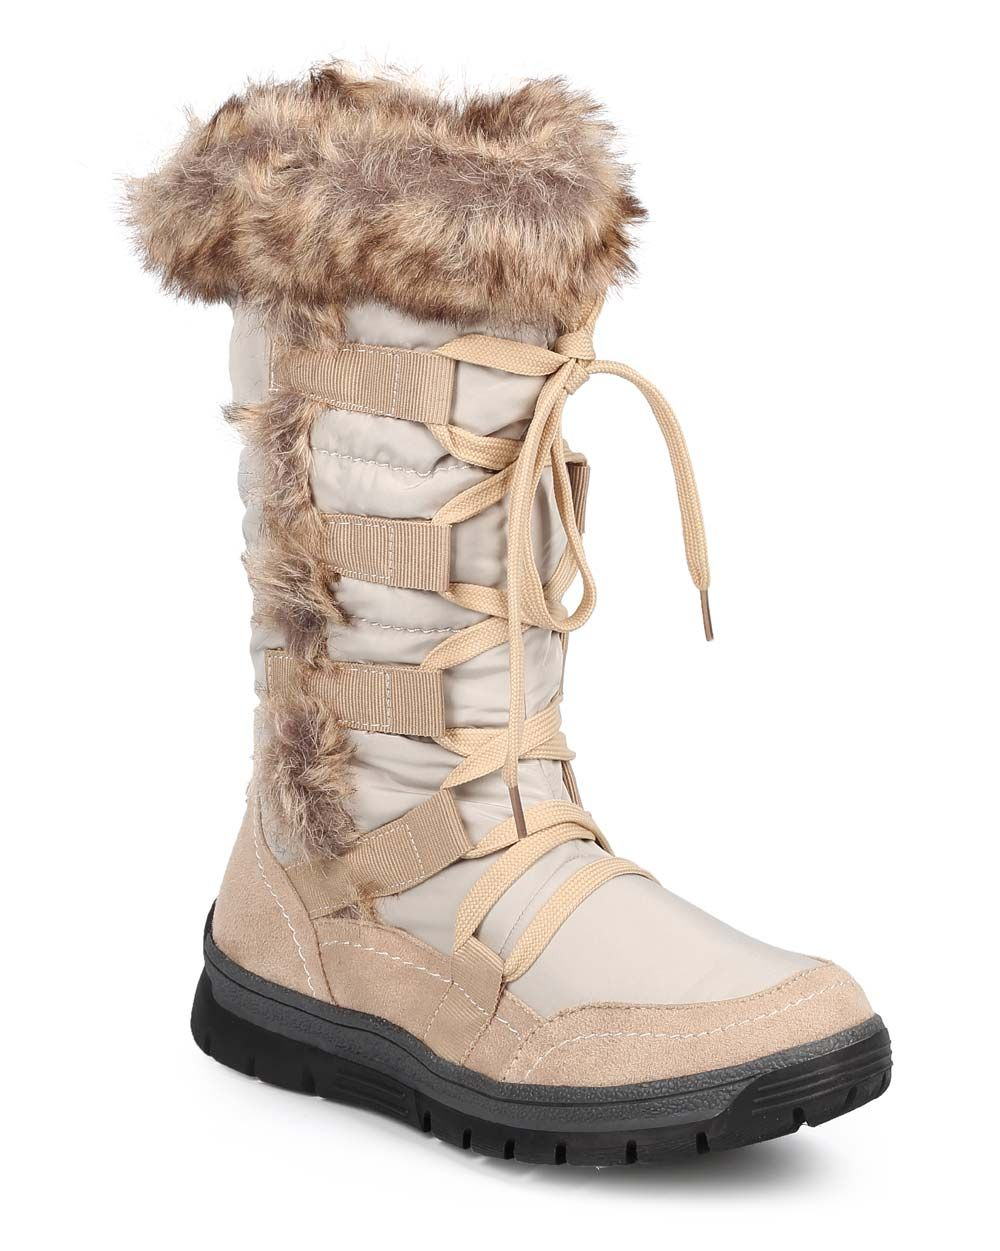 55a2836d763 New-Women-Liliana-Chaney-1-Mixed-Media-Fur-Cuff-Quilted-Lace-Up-Winter-Boot -Size